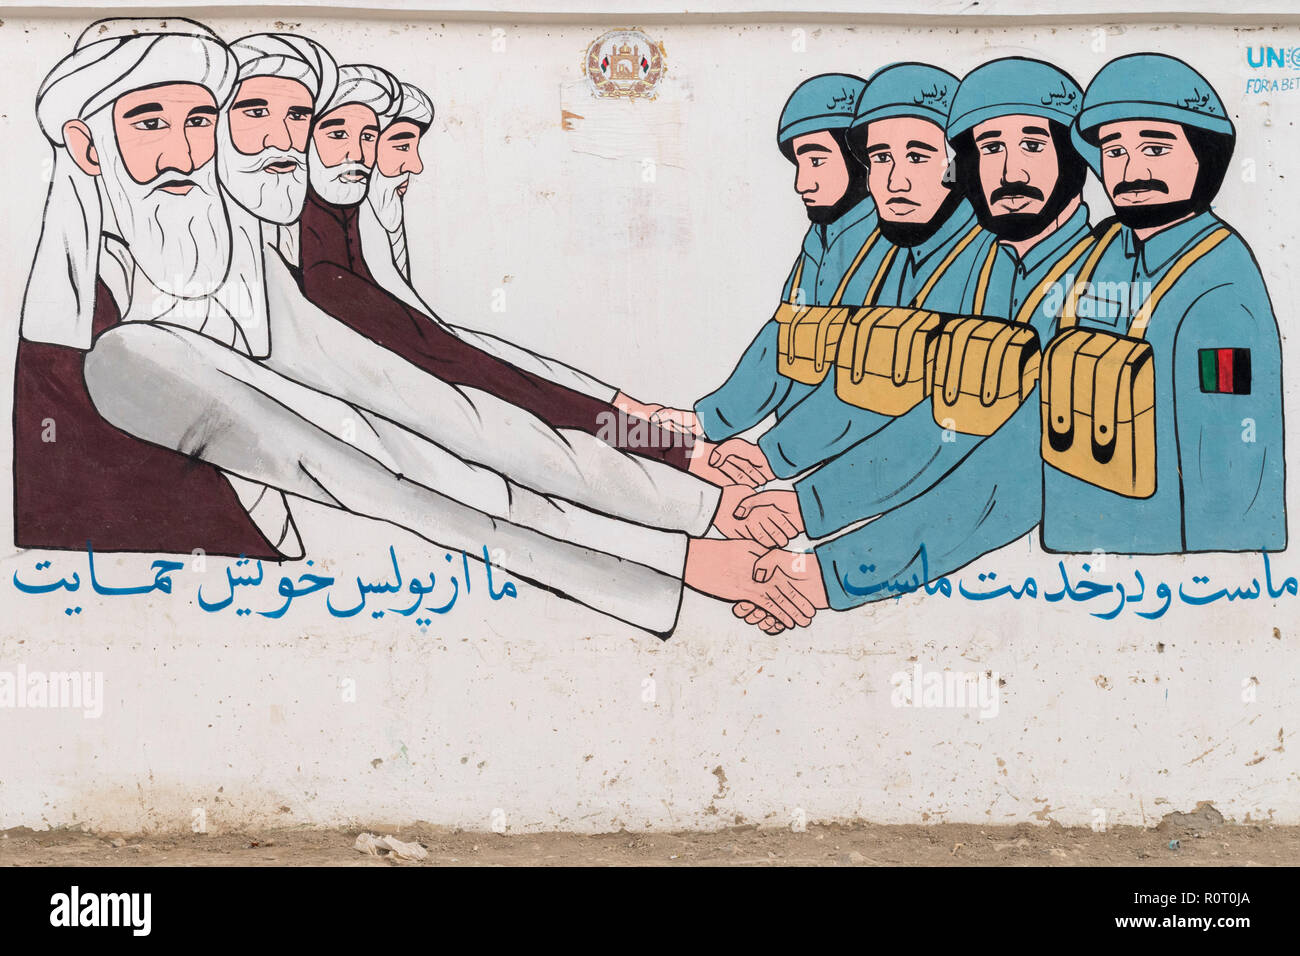 Sponsored Naive Propaganda Mural On The Street Side About The Army And The Clerics Caring Of The People, Mazar-e Sharif, Afghanistan - Stock Image